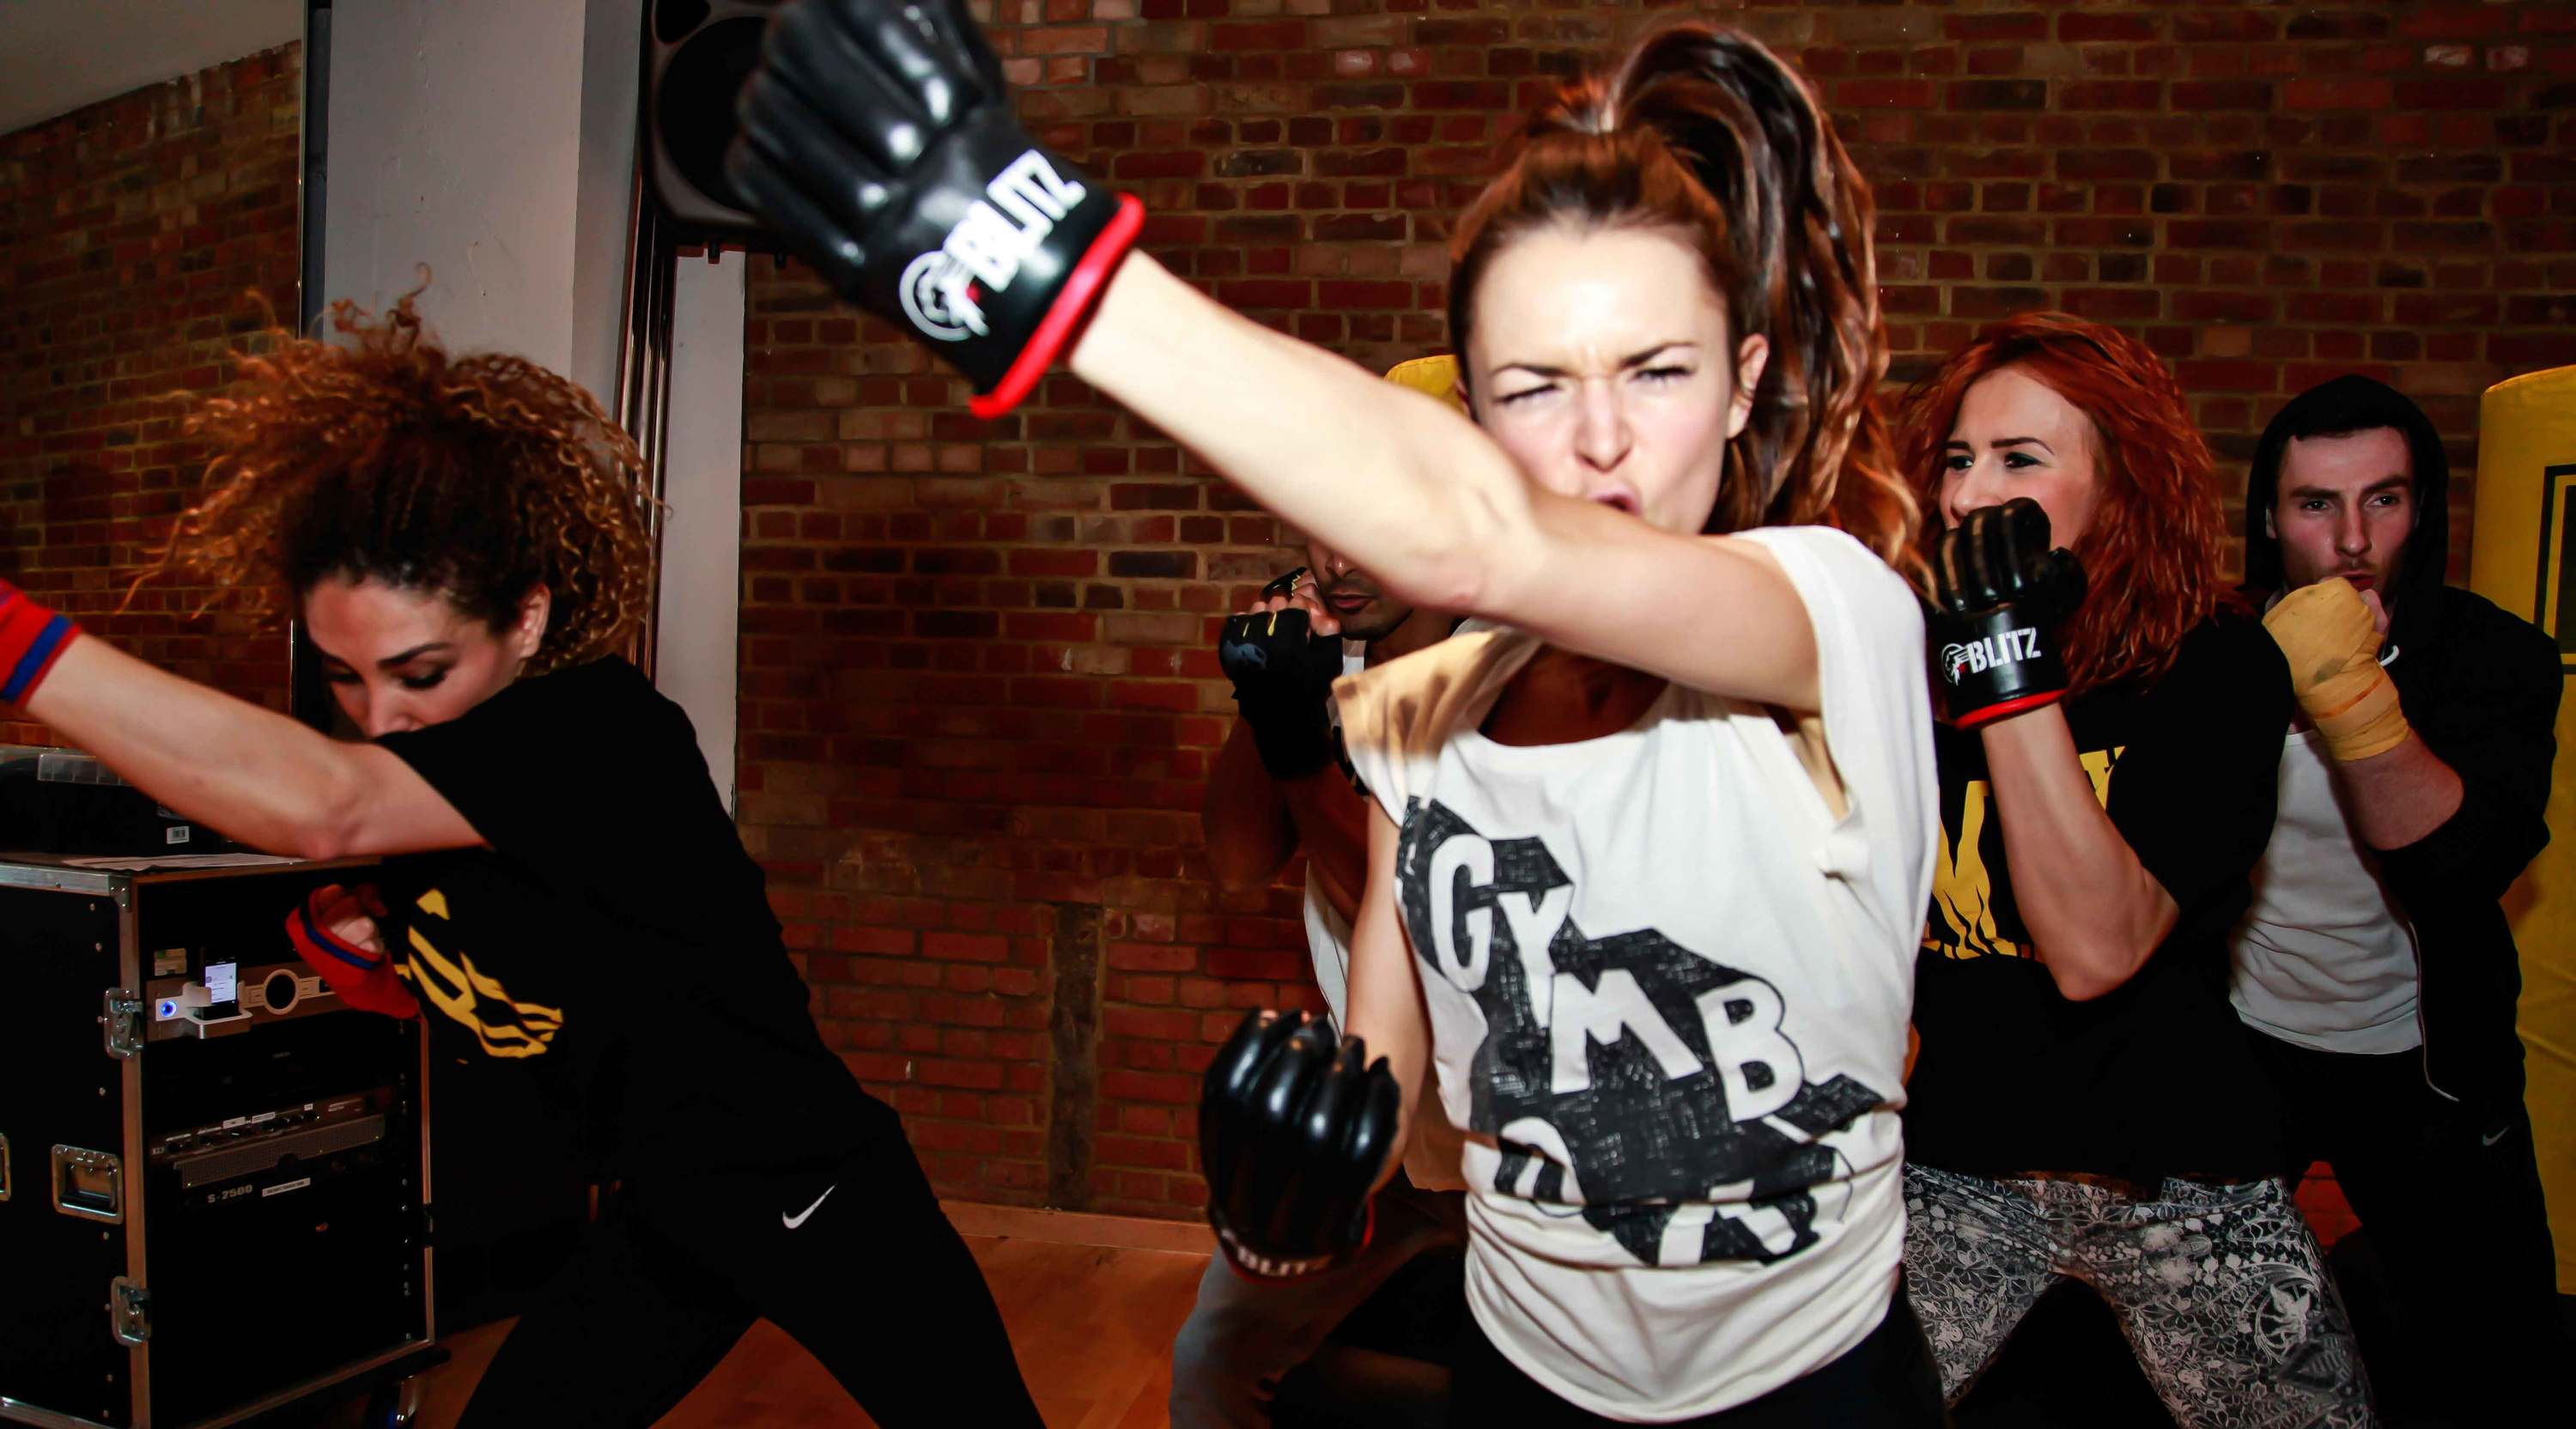 The best boxing classes in London